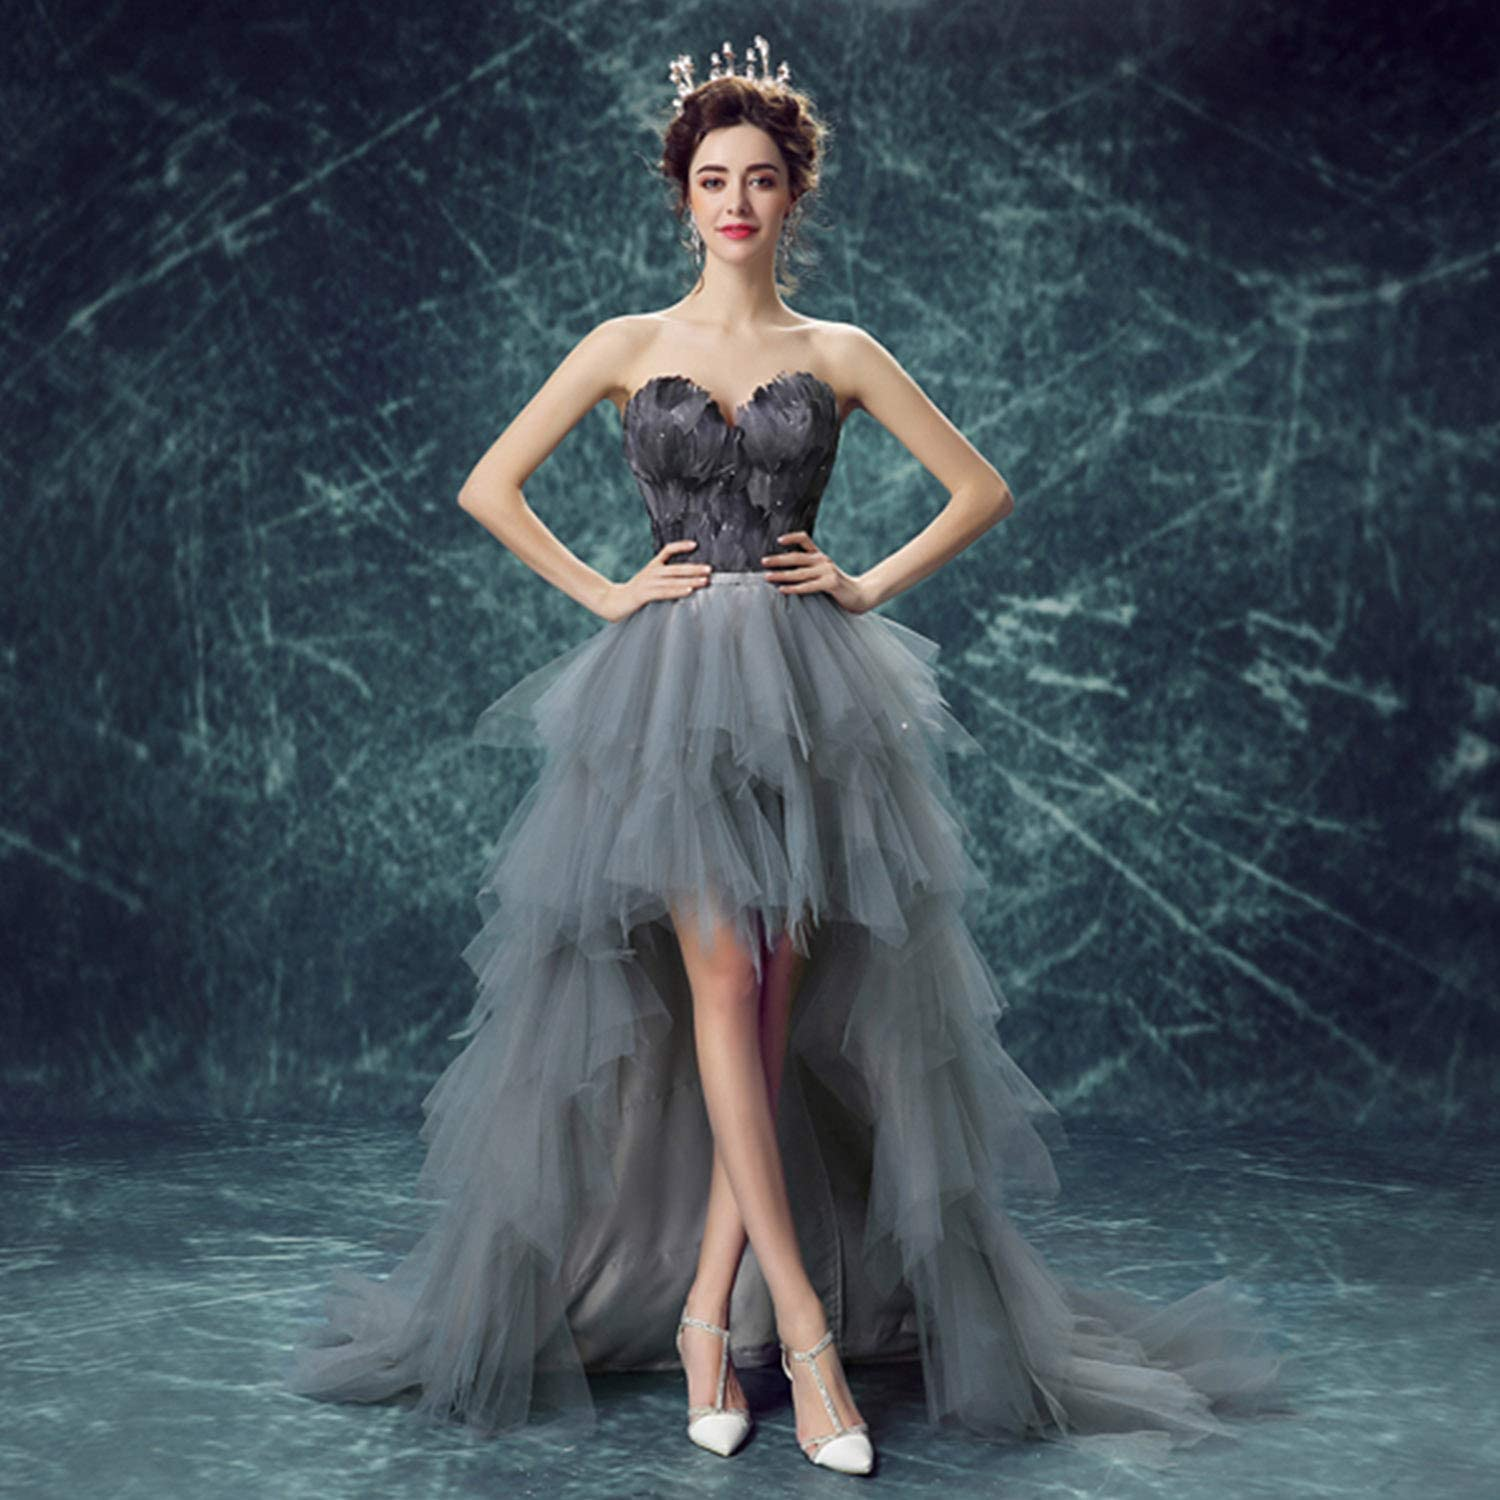 Bride Feather Wedding Dresses Simple Fashion Short Tailing Tee Dress Ideal for Women Ladies Ceremony Evening Party Ball Gown Use,Gift